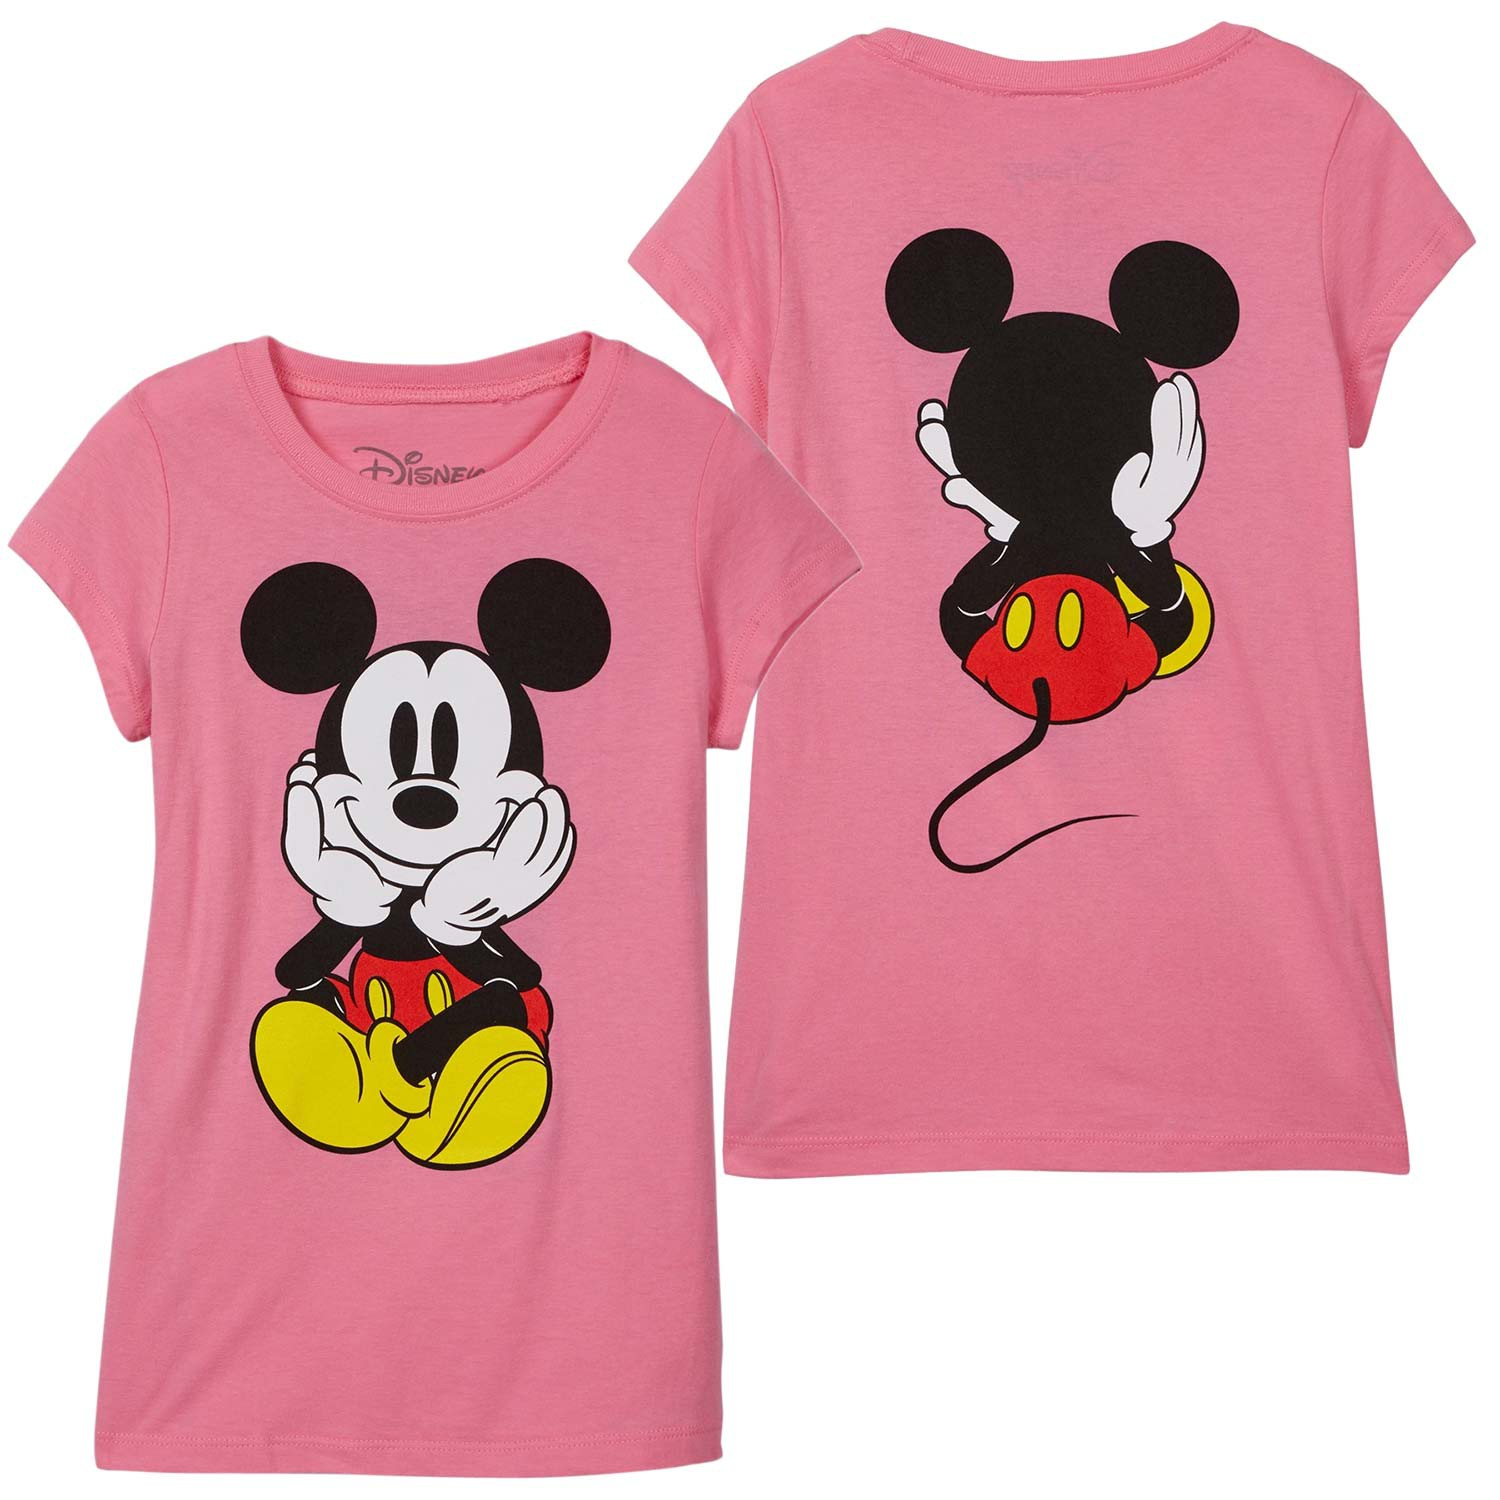 Mickey Mouse Front Back Print Youth Girls Pink Tee Shirt